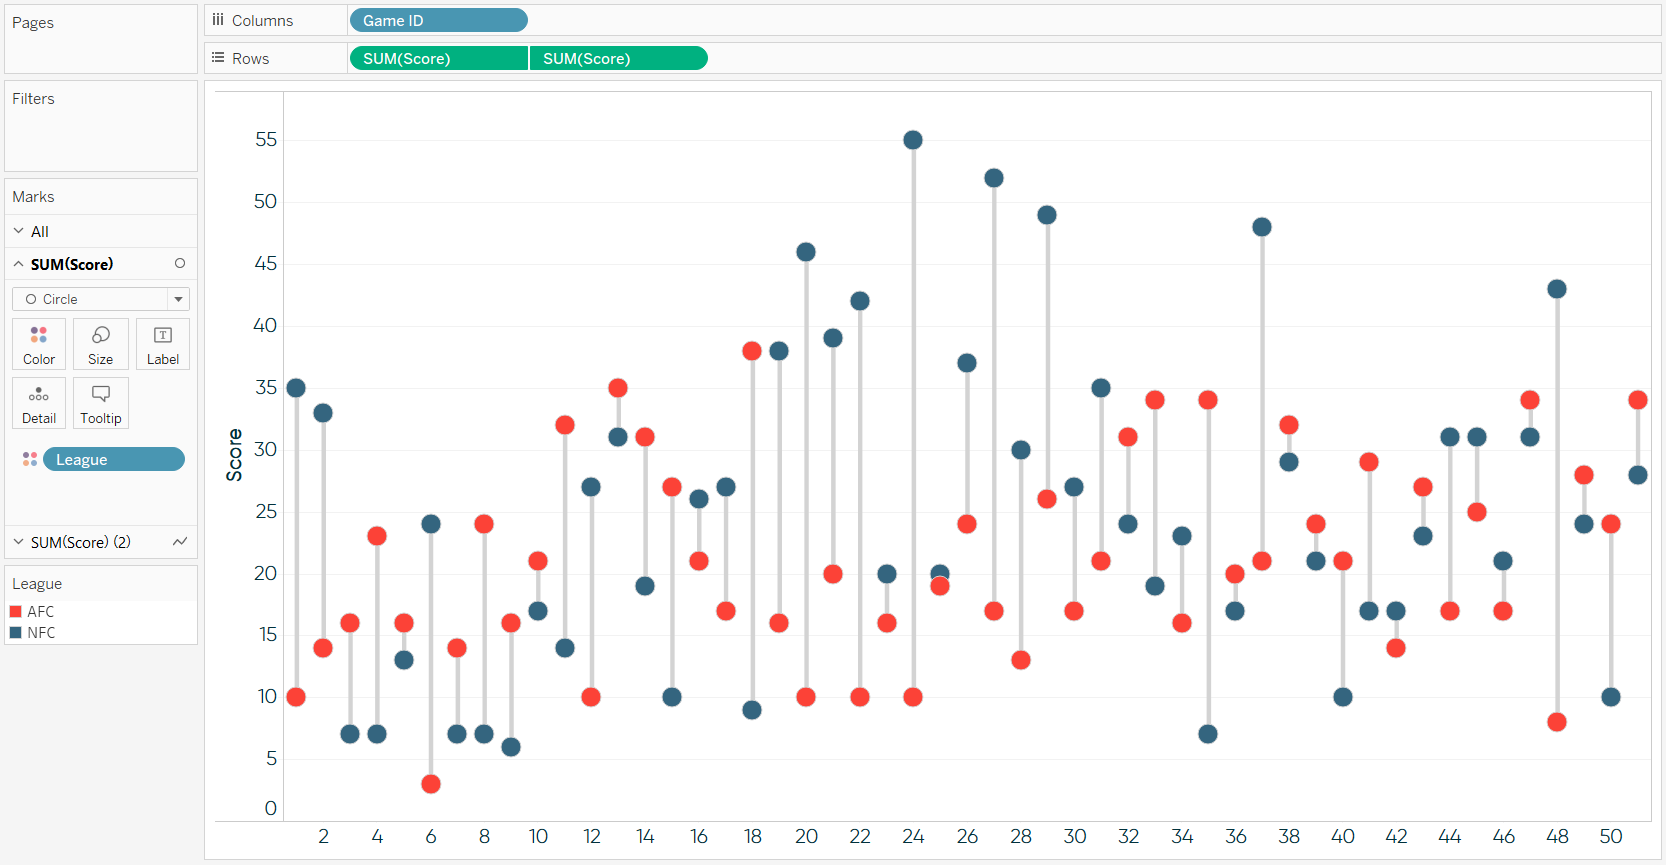 Tableau Super Bowl Margins of Victory Dumbbell Chart